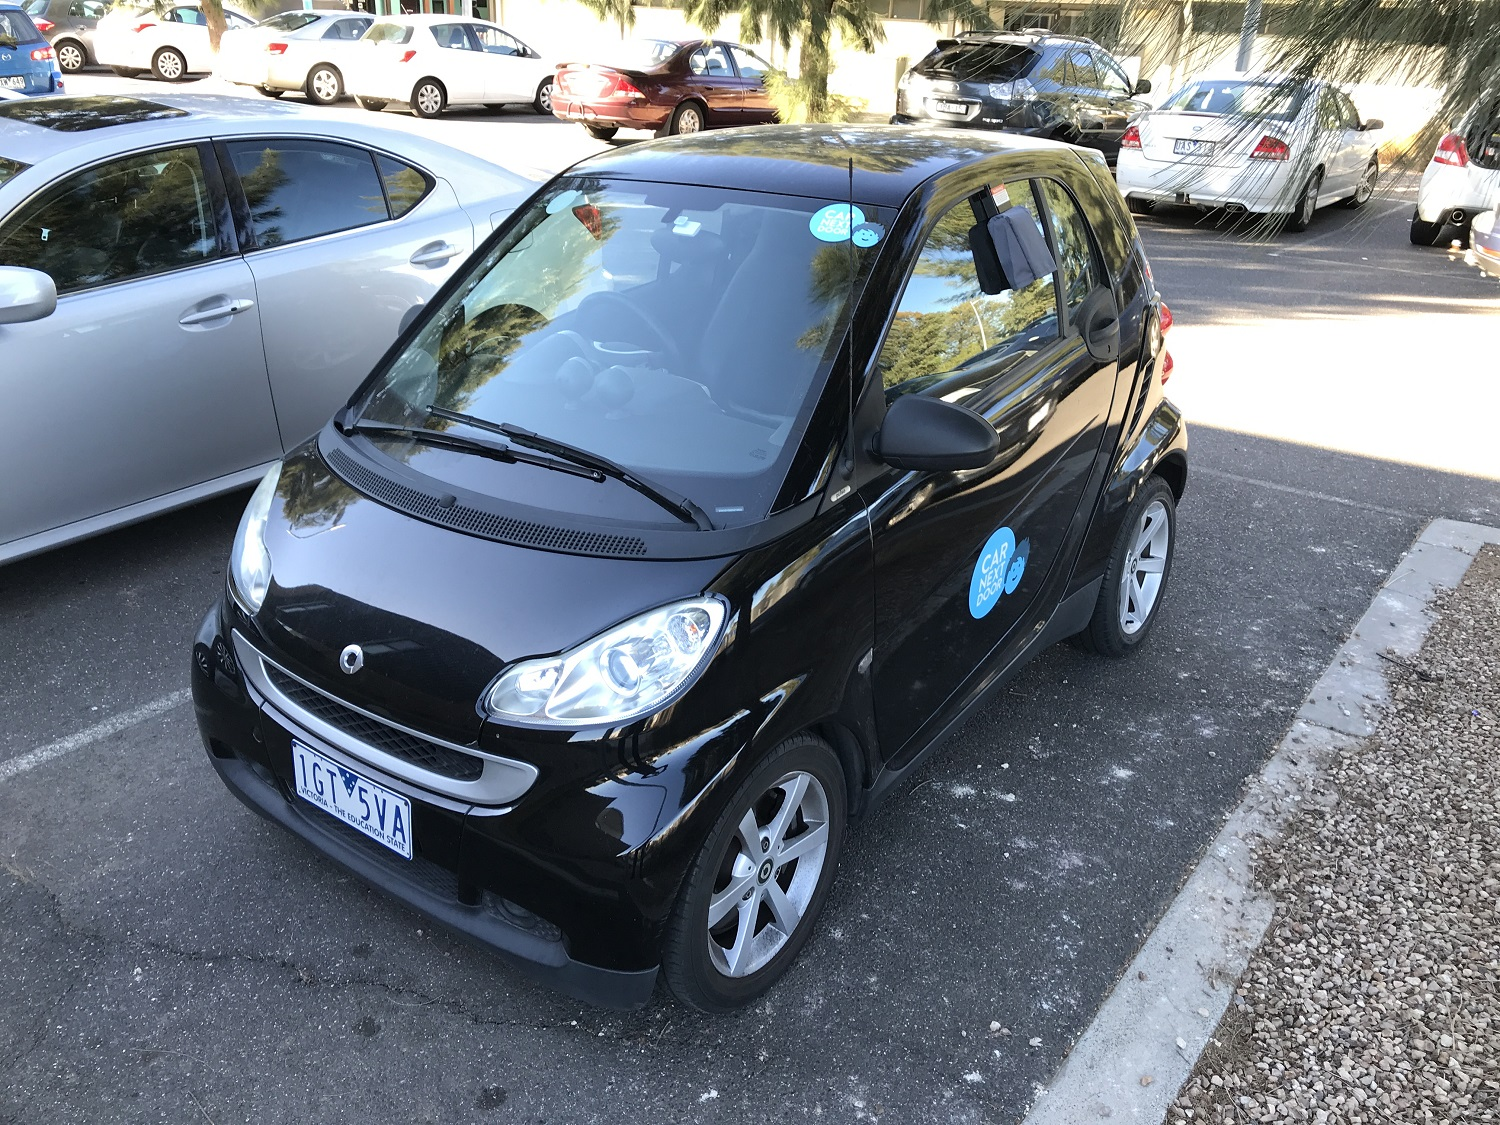 Picture of Jeancarlo's 2008 Smart Fortwo